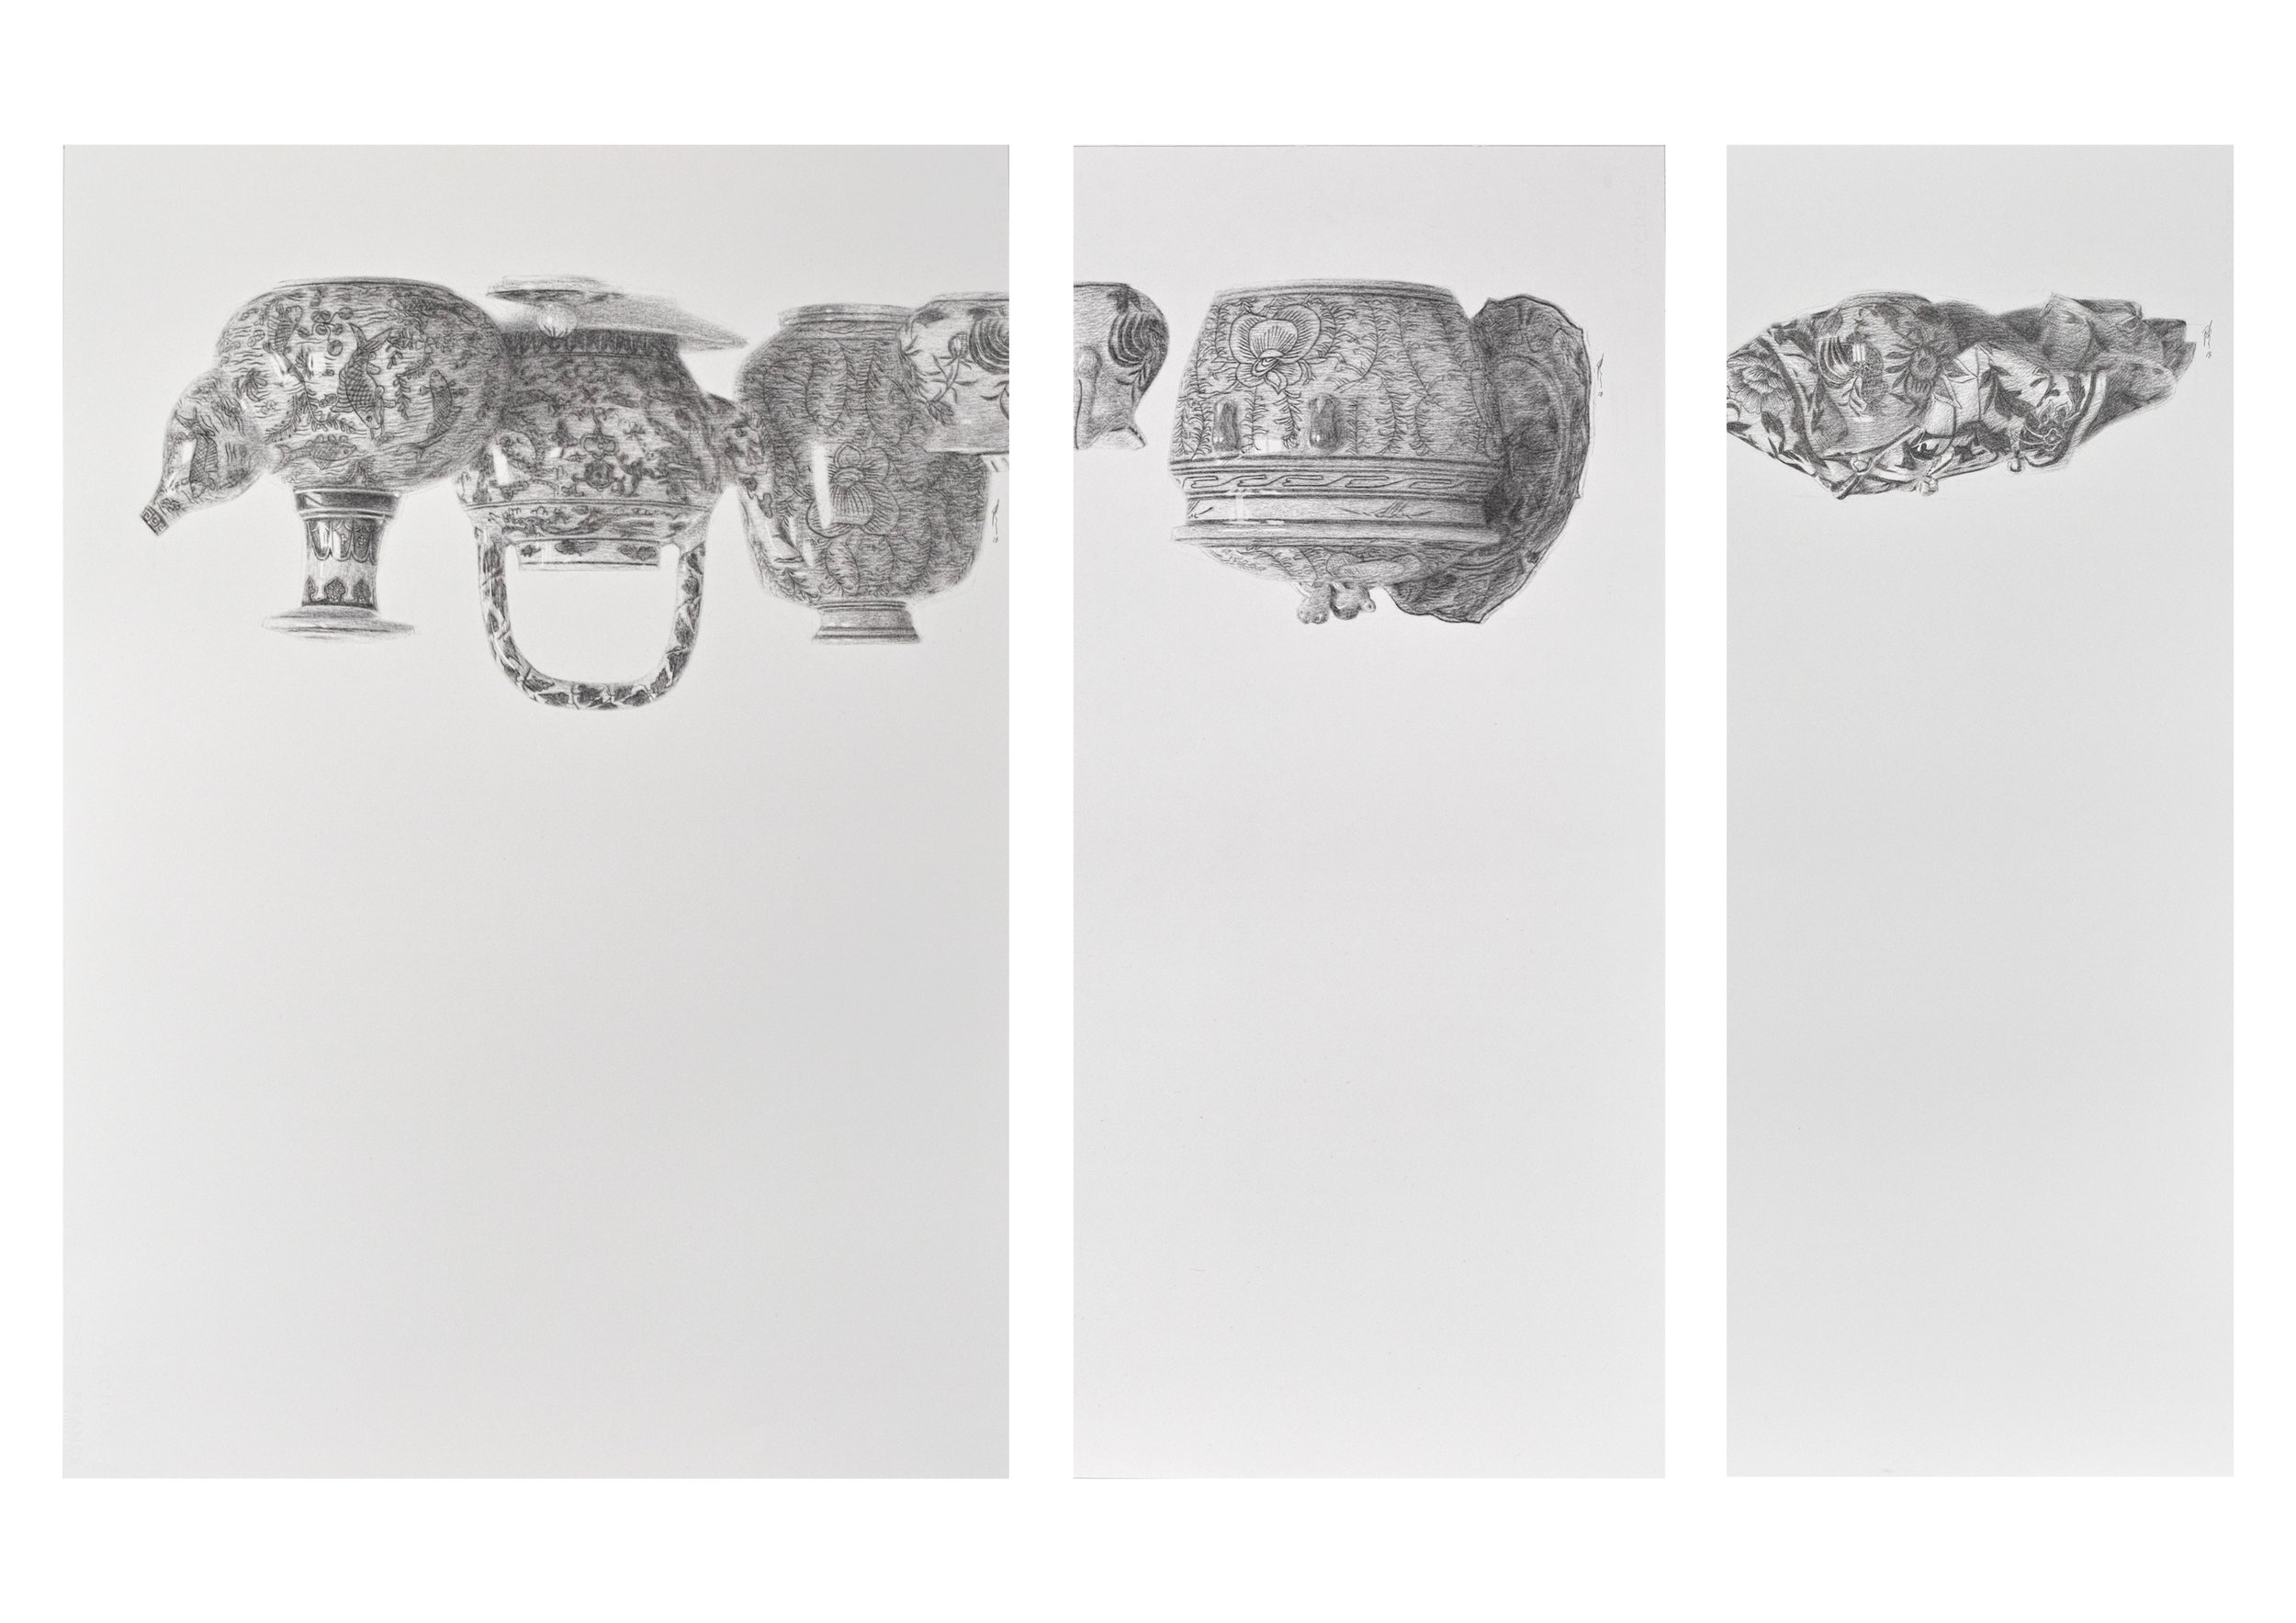 "Hills like white elephants    悬念 (I) (II) (III)  charcoal on paper 2018 74.5cm x 52.5cm 74.5cm x 33.5cm 74.5cm x 27.5cm  exhibited at Art Seasons Gallery ""Still, Singapore Life"" group show.  past series:  Hills Like White Elephants"